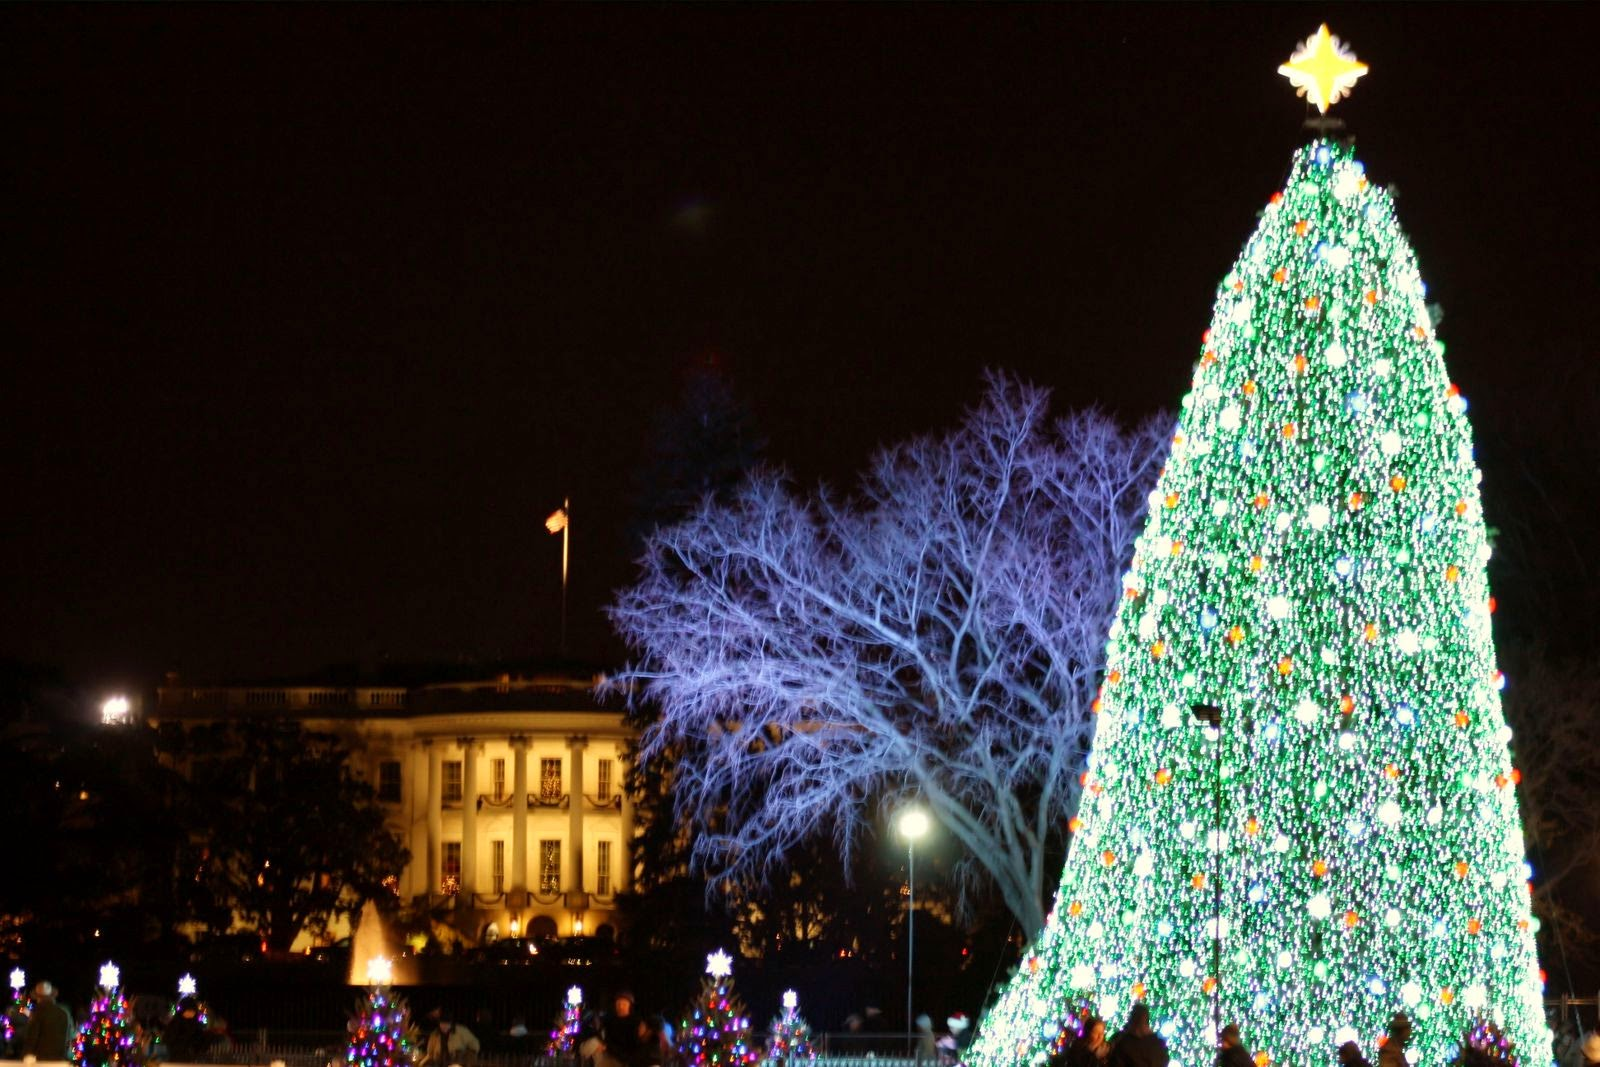 Superior Christmas Tree Washington Part 5 If Youu0027re Going  - Visiting The National Christmas Tree